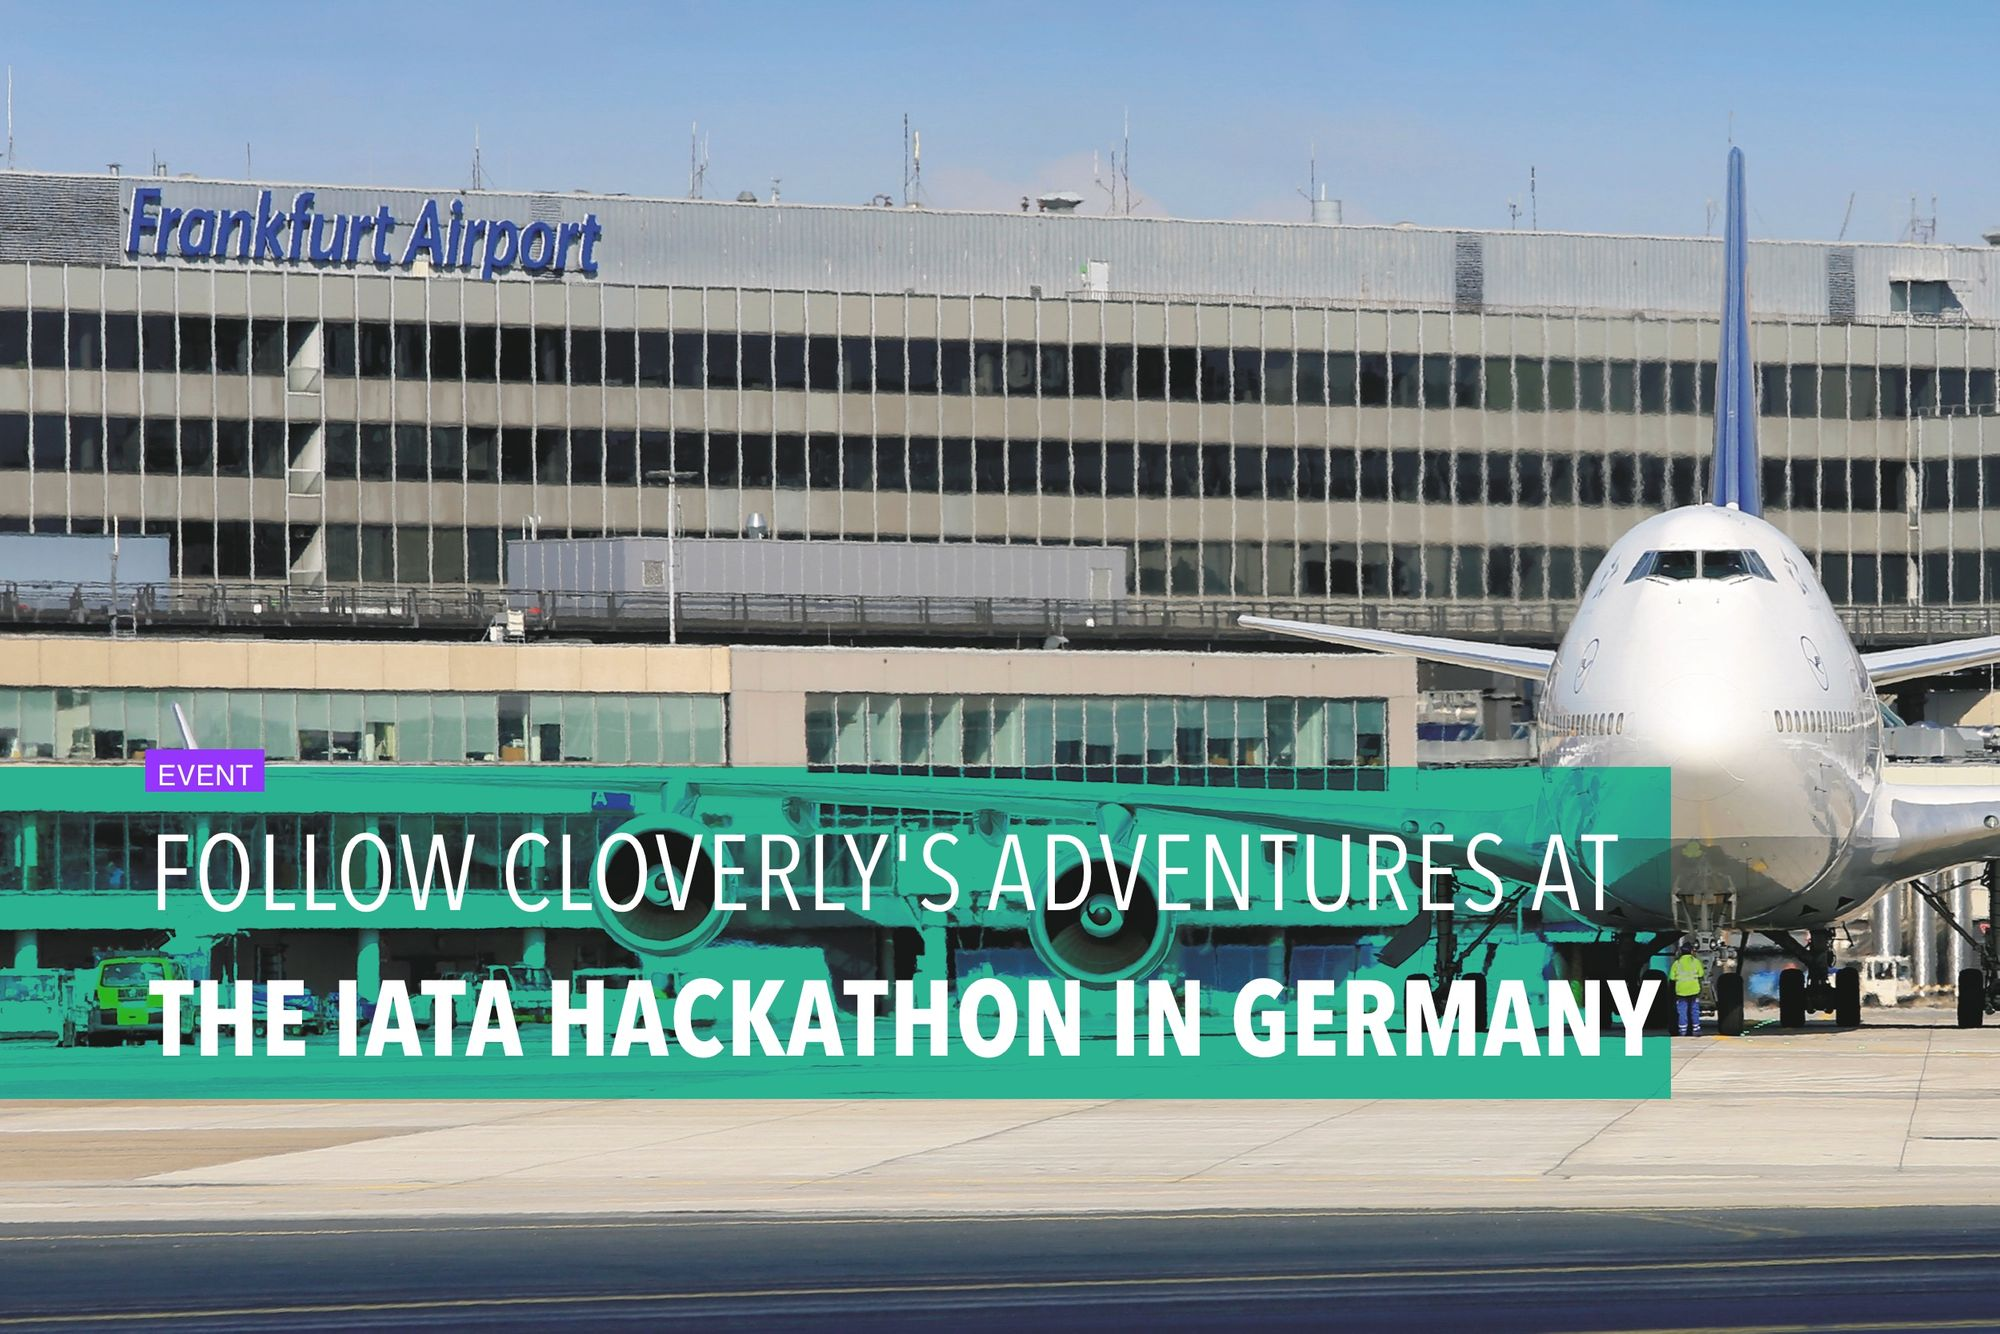 Follow Cloverly's adventures at the IATA hackathon in Germany